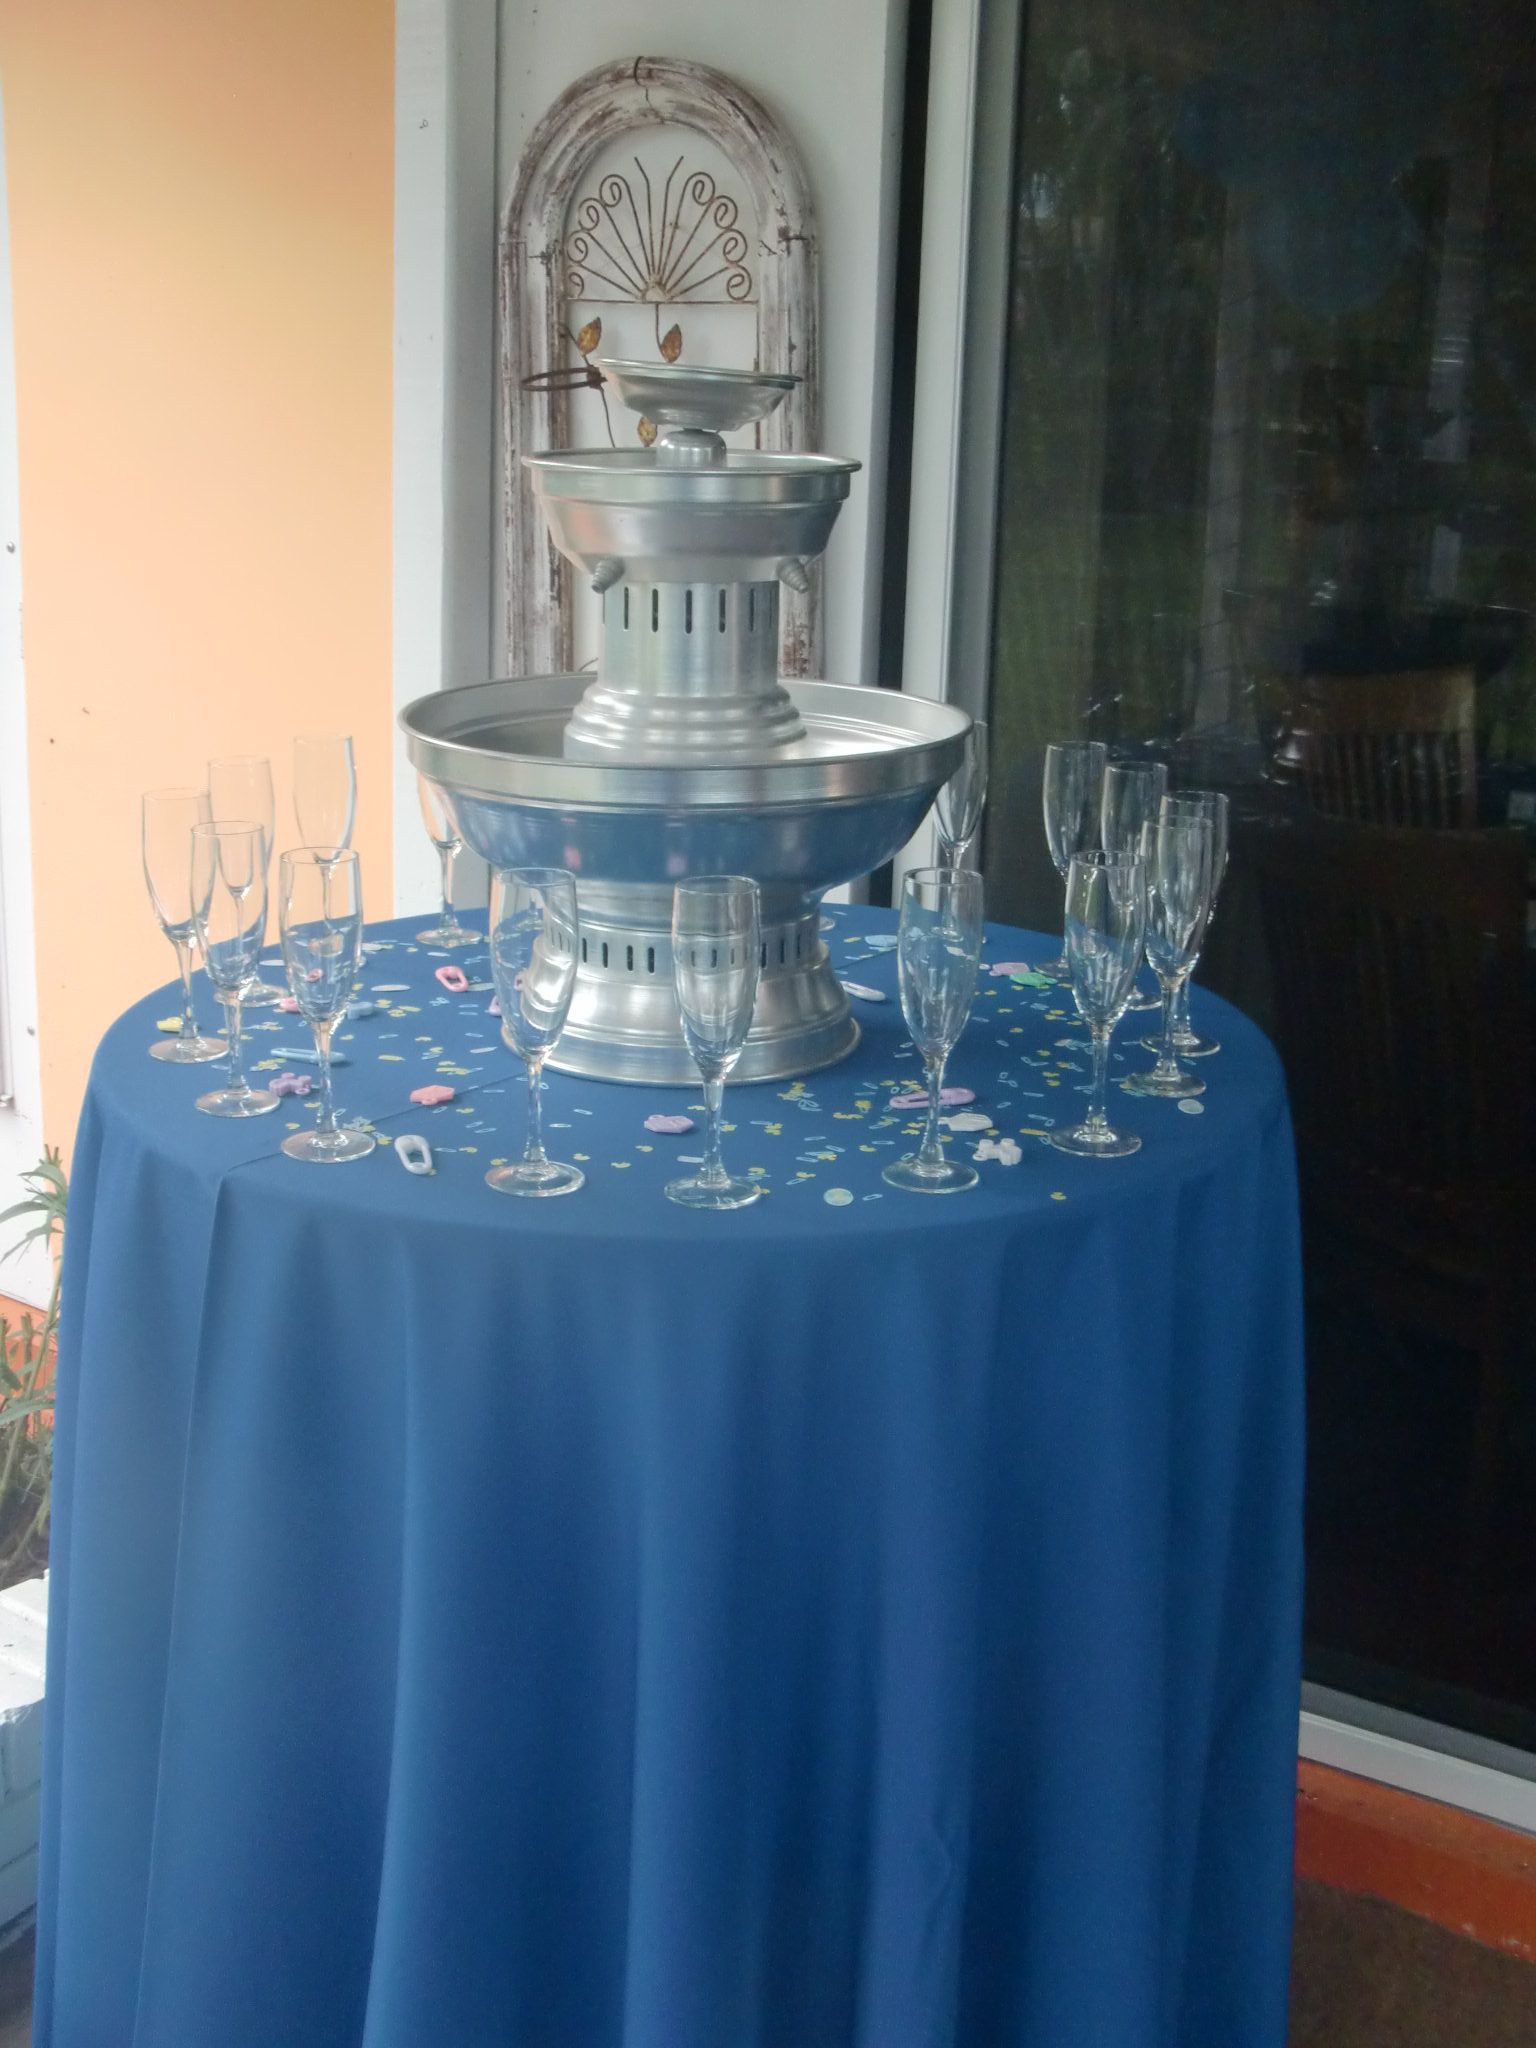 It's a Boy - Champagne Fountain and Glasses